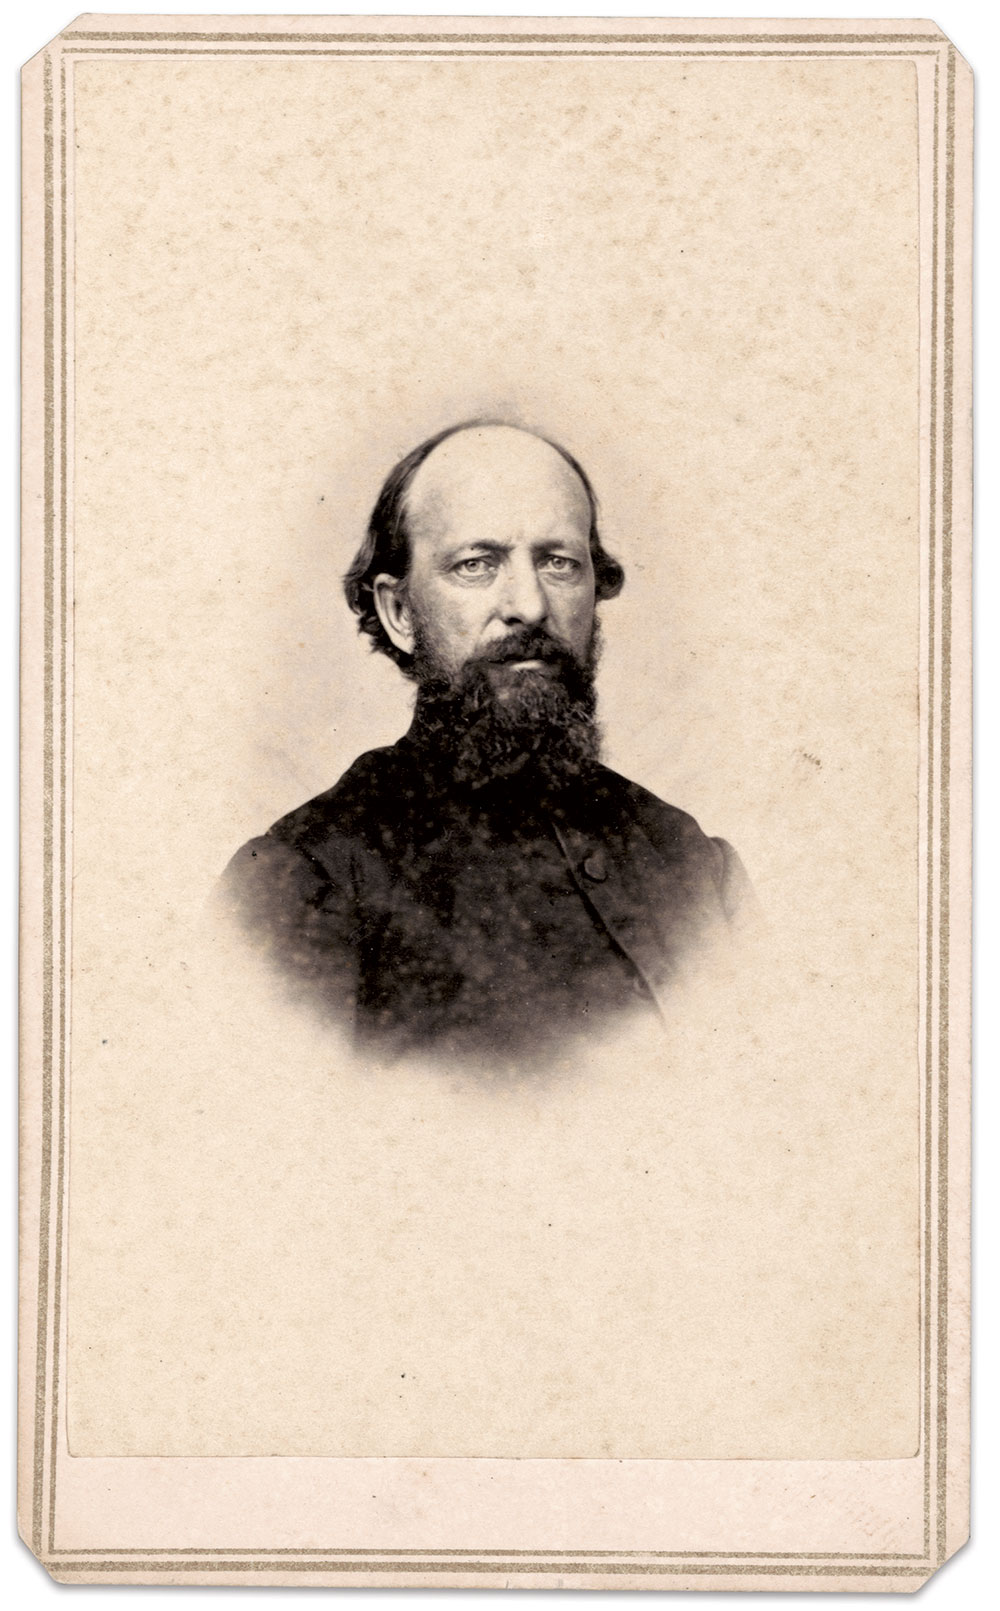 Carte de visite by Moulton & Larkin of Elmira, N.Y. The Liljenquist Family Collection at the Library of Congress.